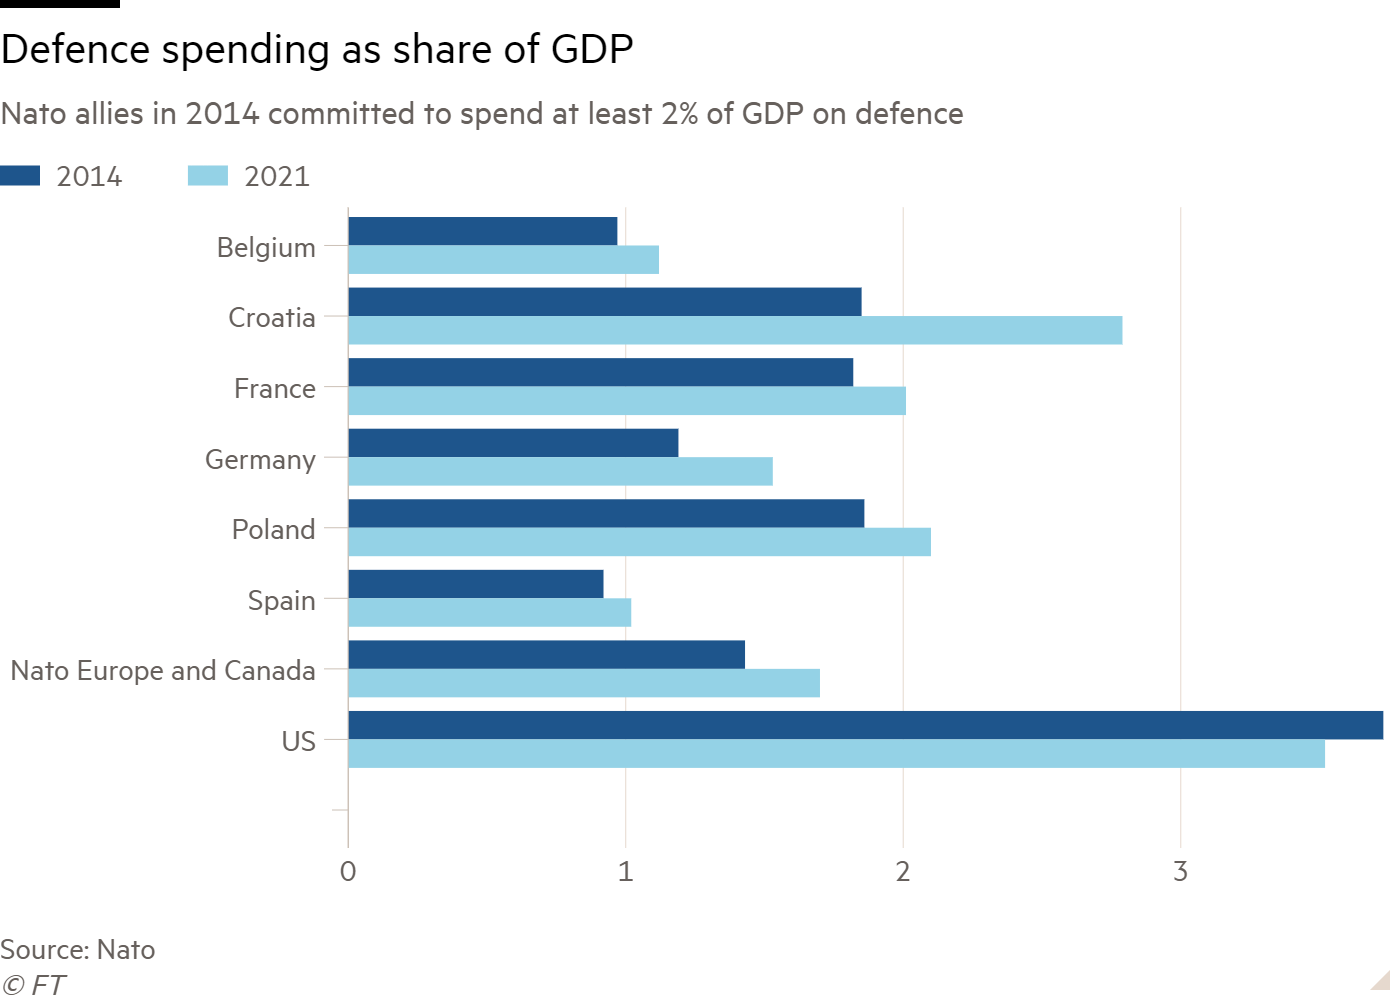 Bar chart of Nato allies in 2014 committed to spend at least 2% of GDP on defence showing Defence spending as share of GDP